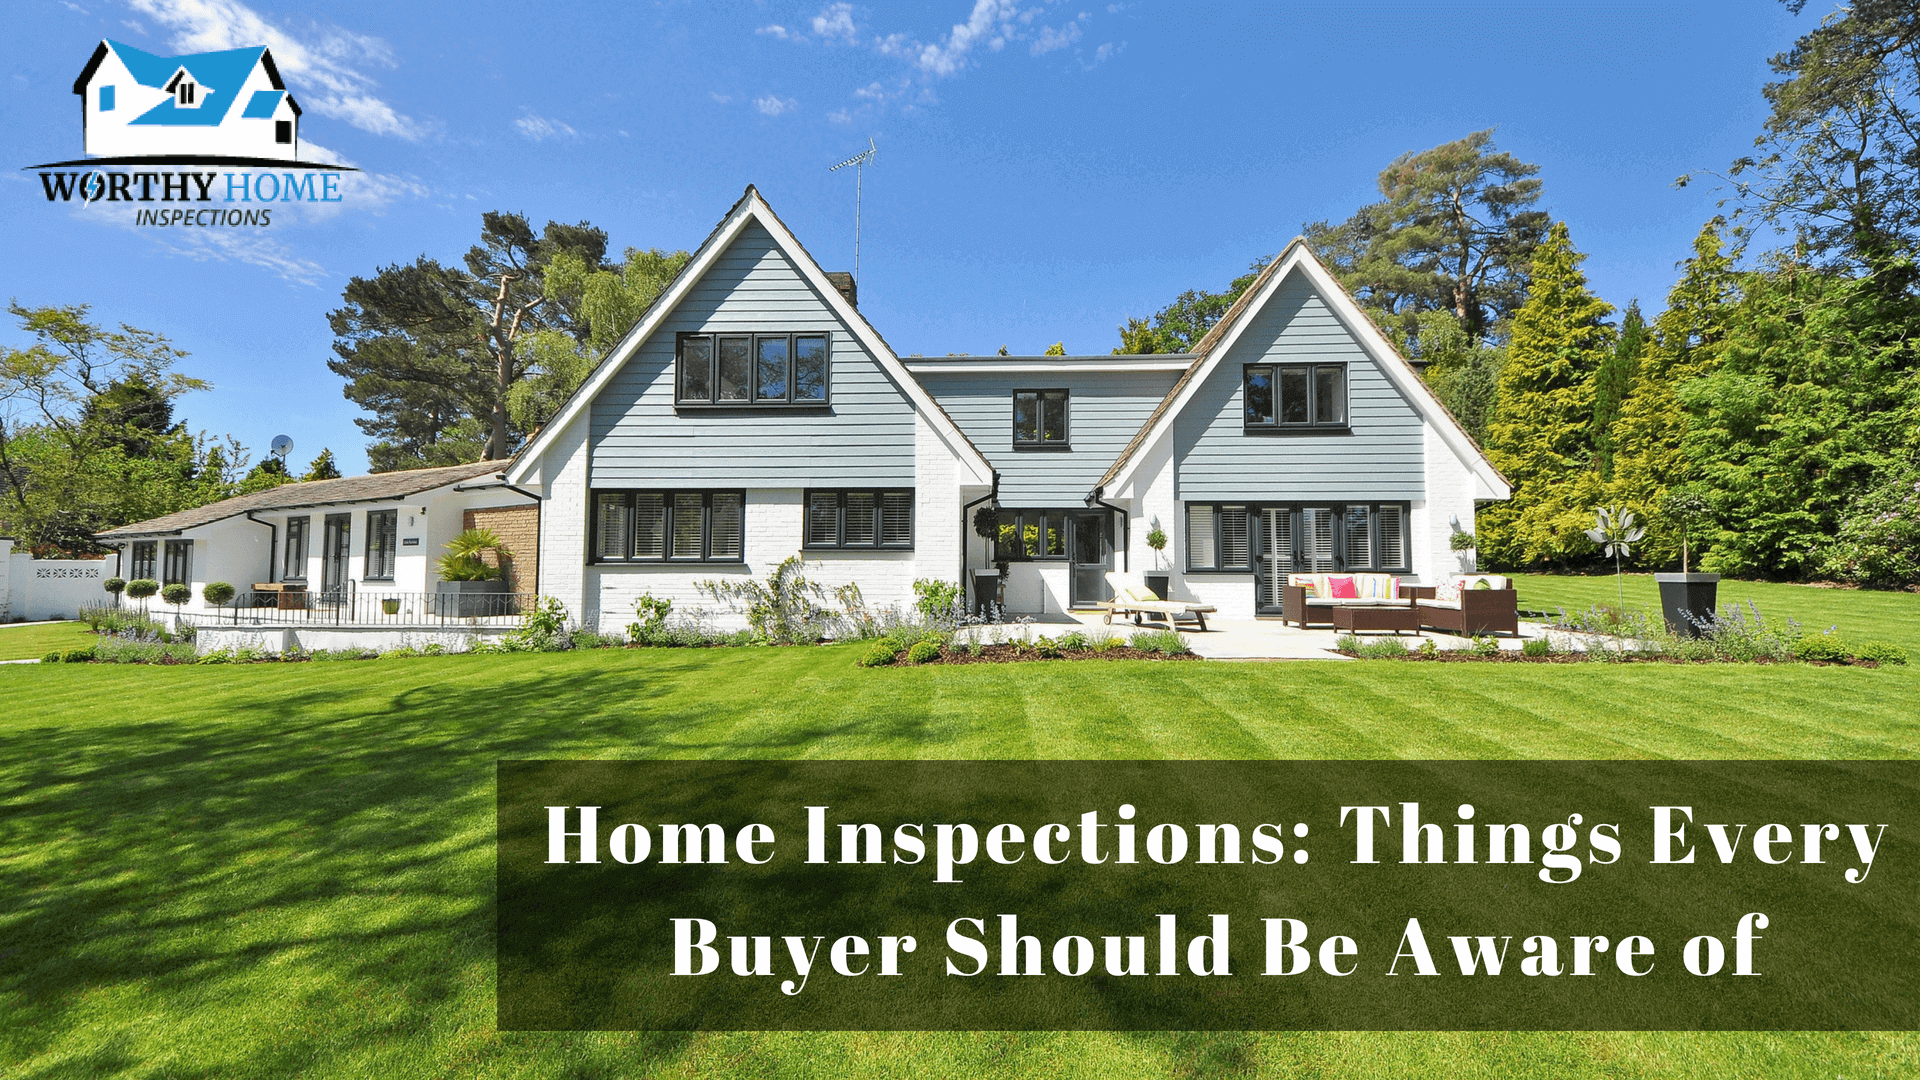 Home Inspections: Things Every Buyer Should Be Aware of